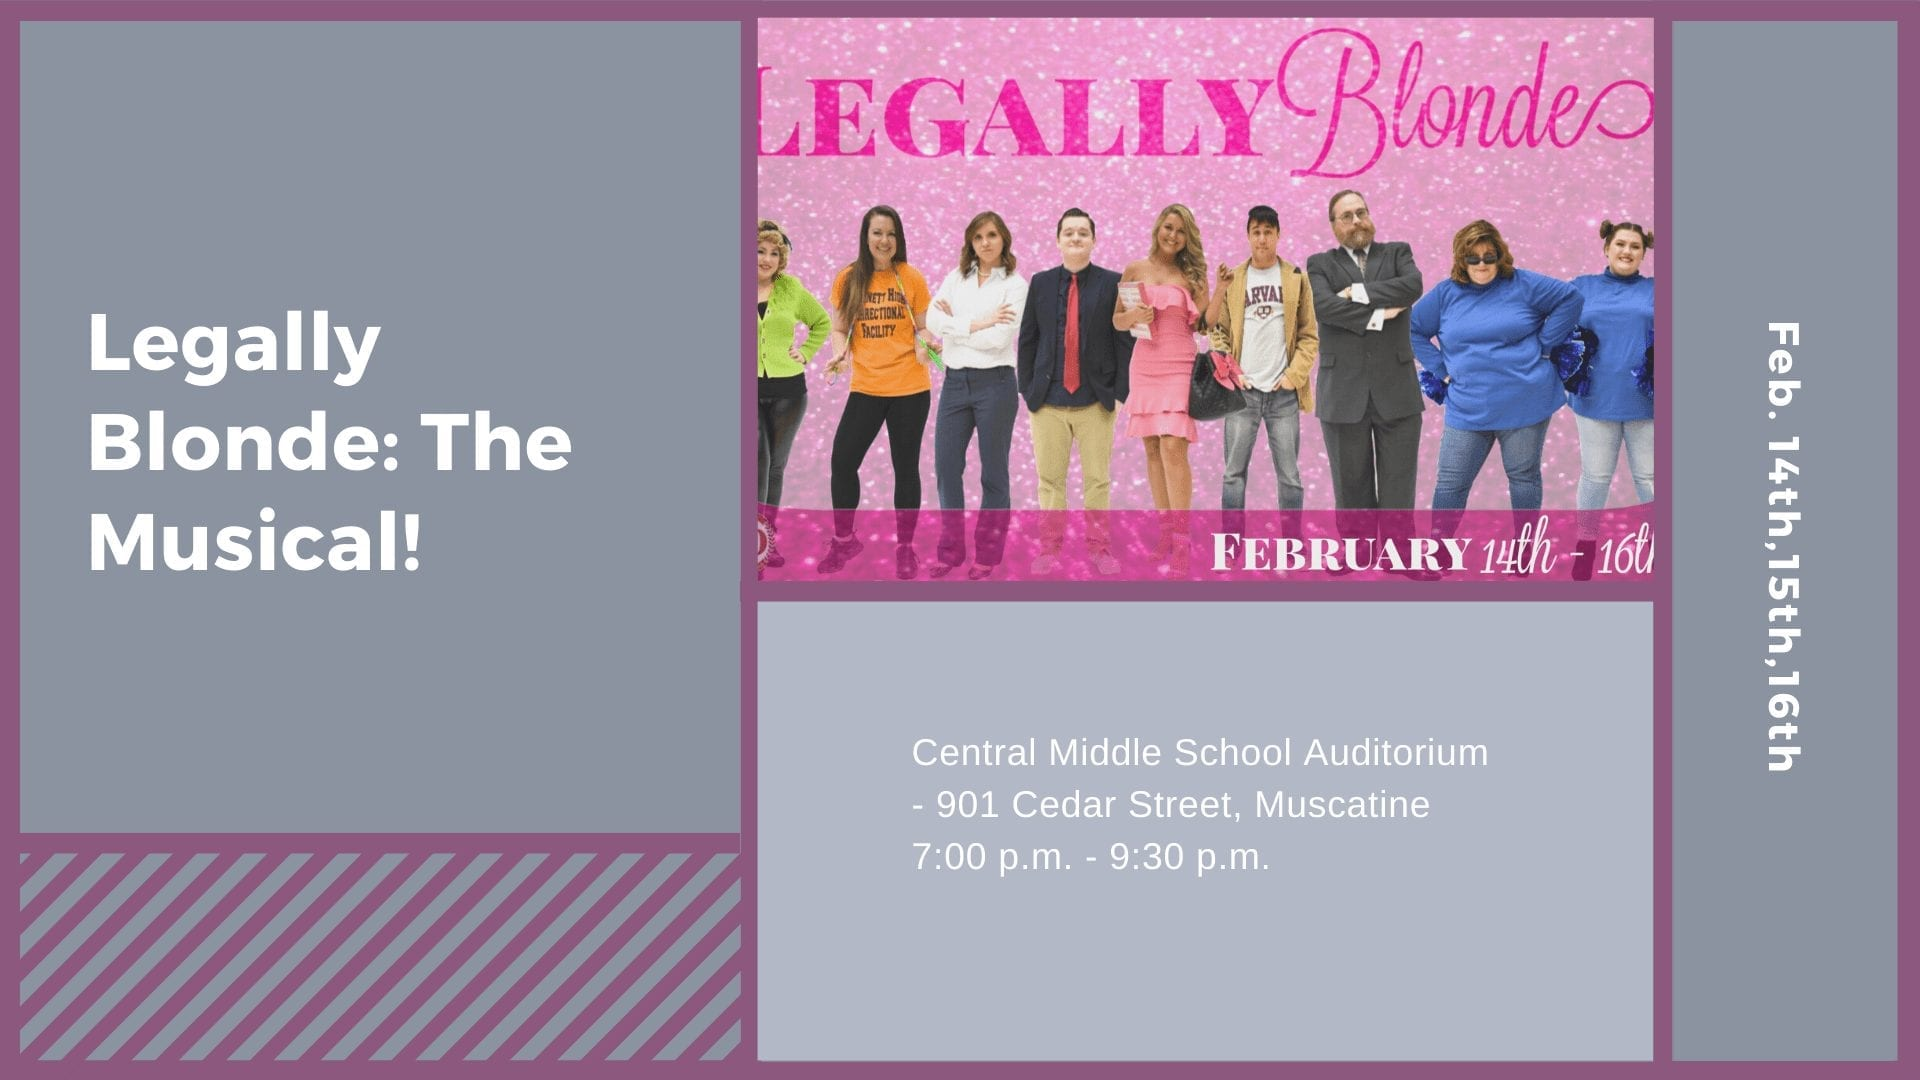 Legally Blonde: The Musical!